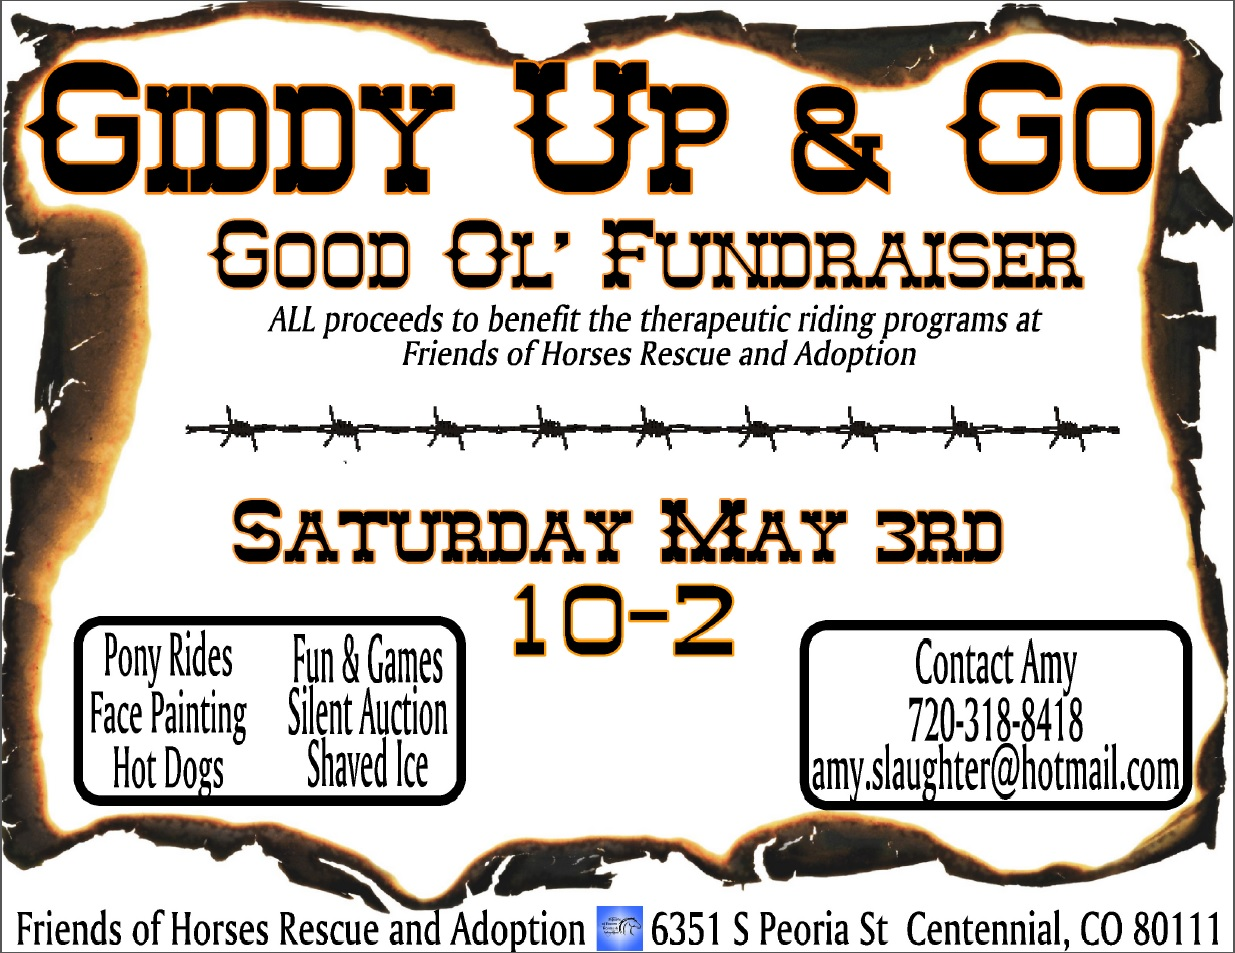 Giddy Up and Go Therapeudic Riding Fundraiser 2014